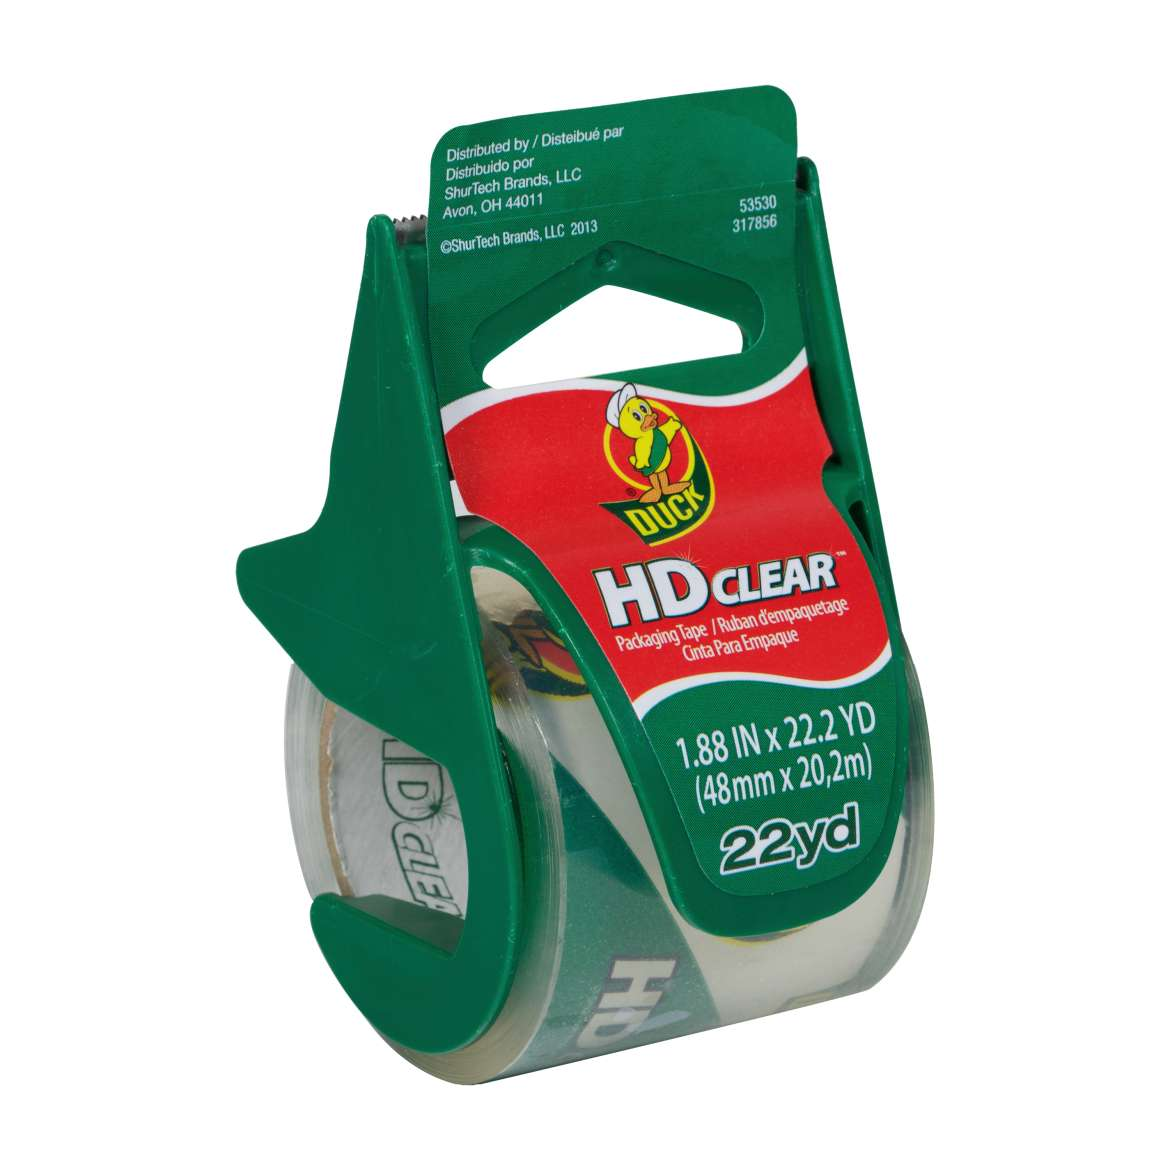 HD Clear™ Heavy Duty Packaging Tape with Dispenser - Clear, 1.88 in. x 22.2 yd. Image